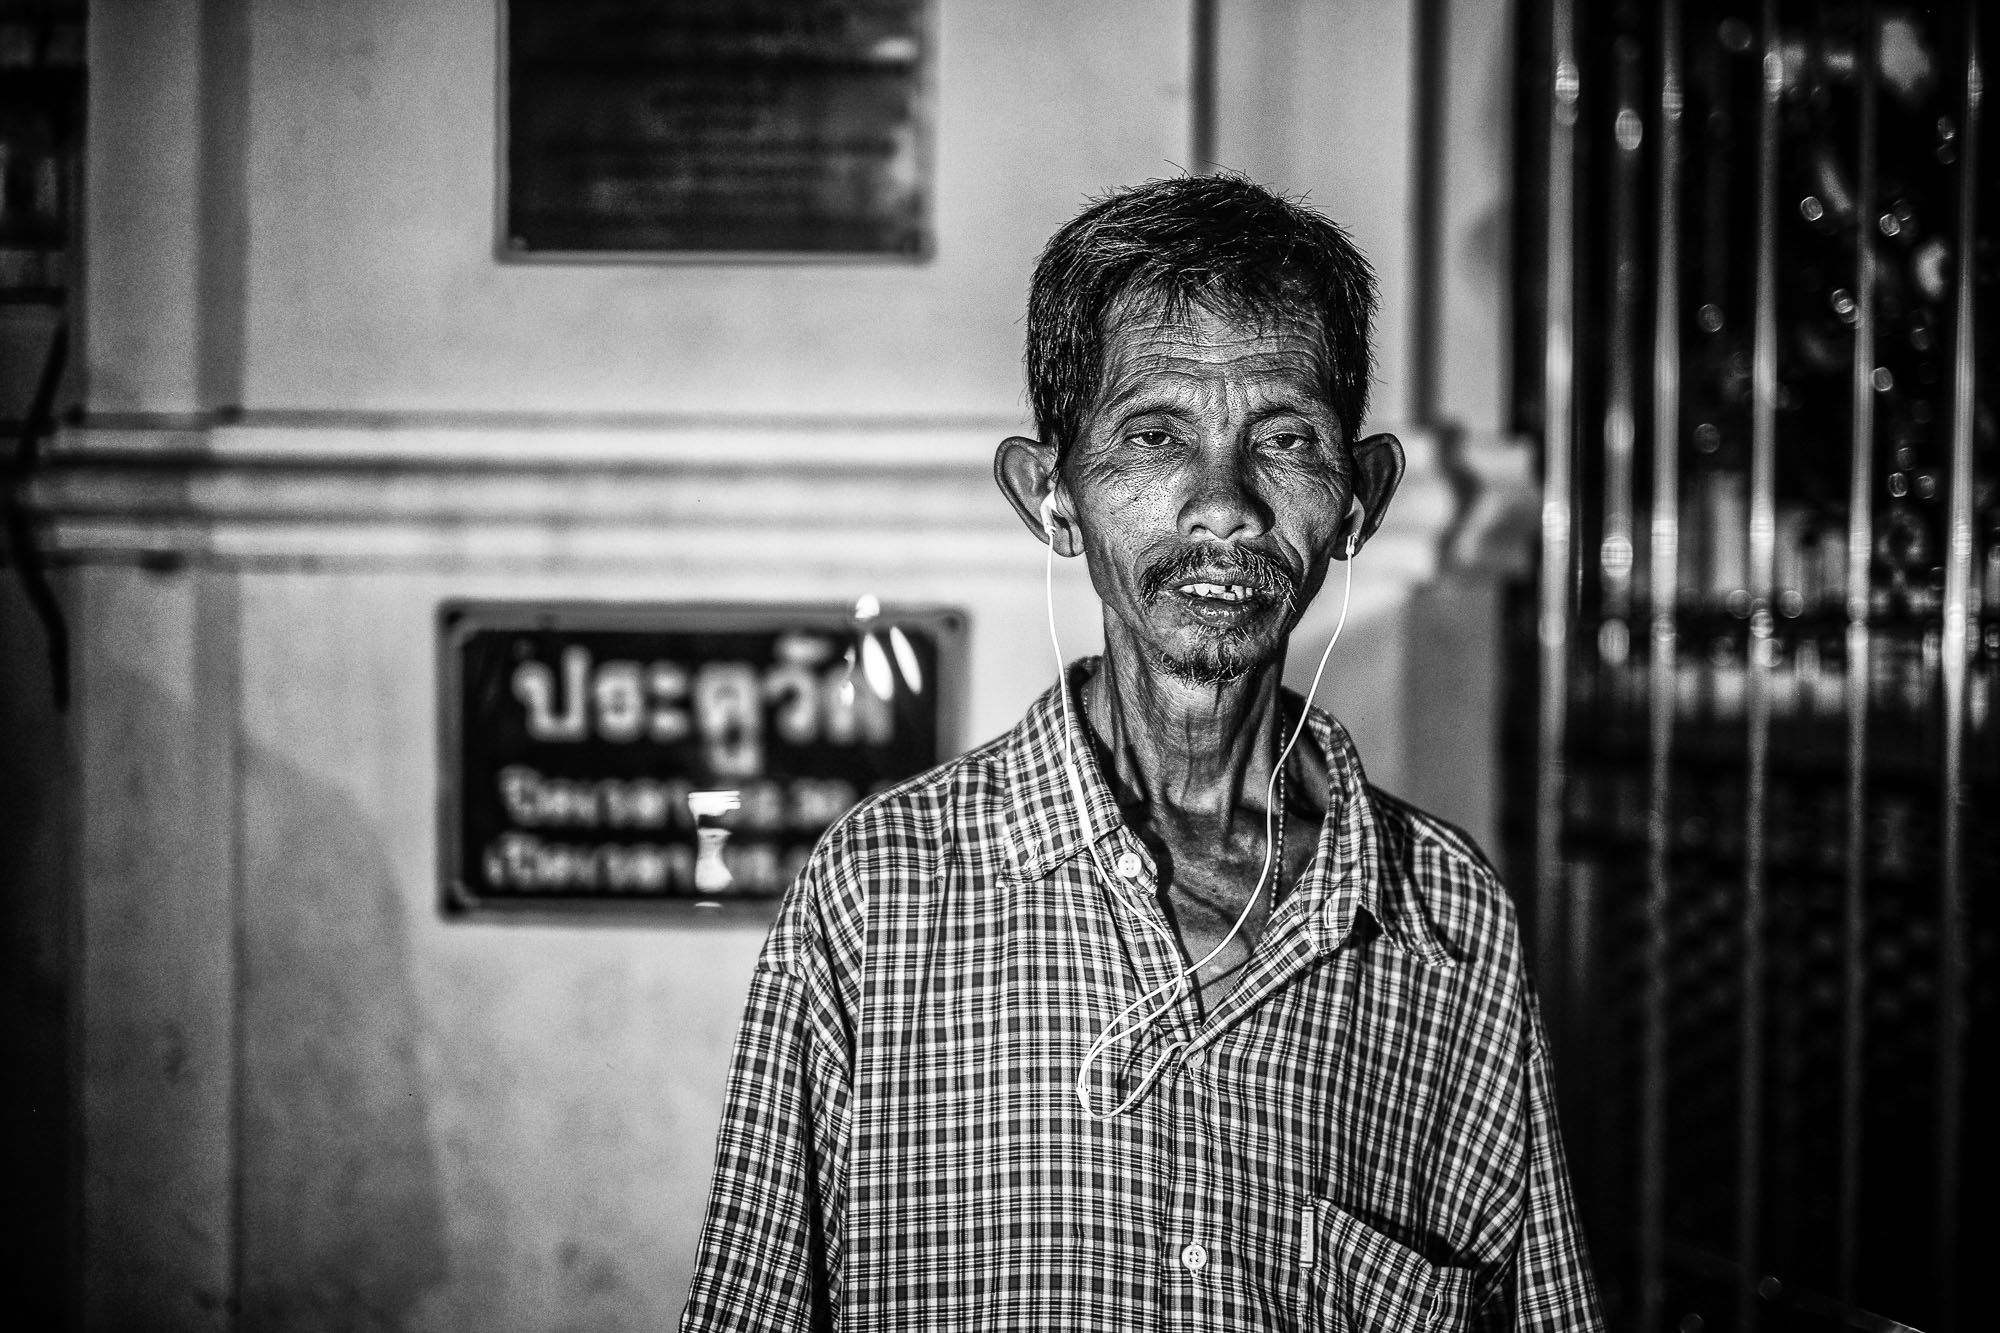 CHIANG MAI thailand asia street photography portrait market man